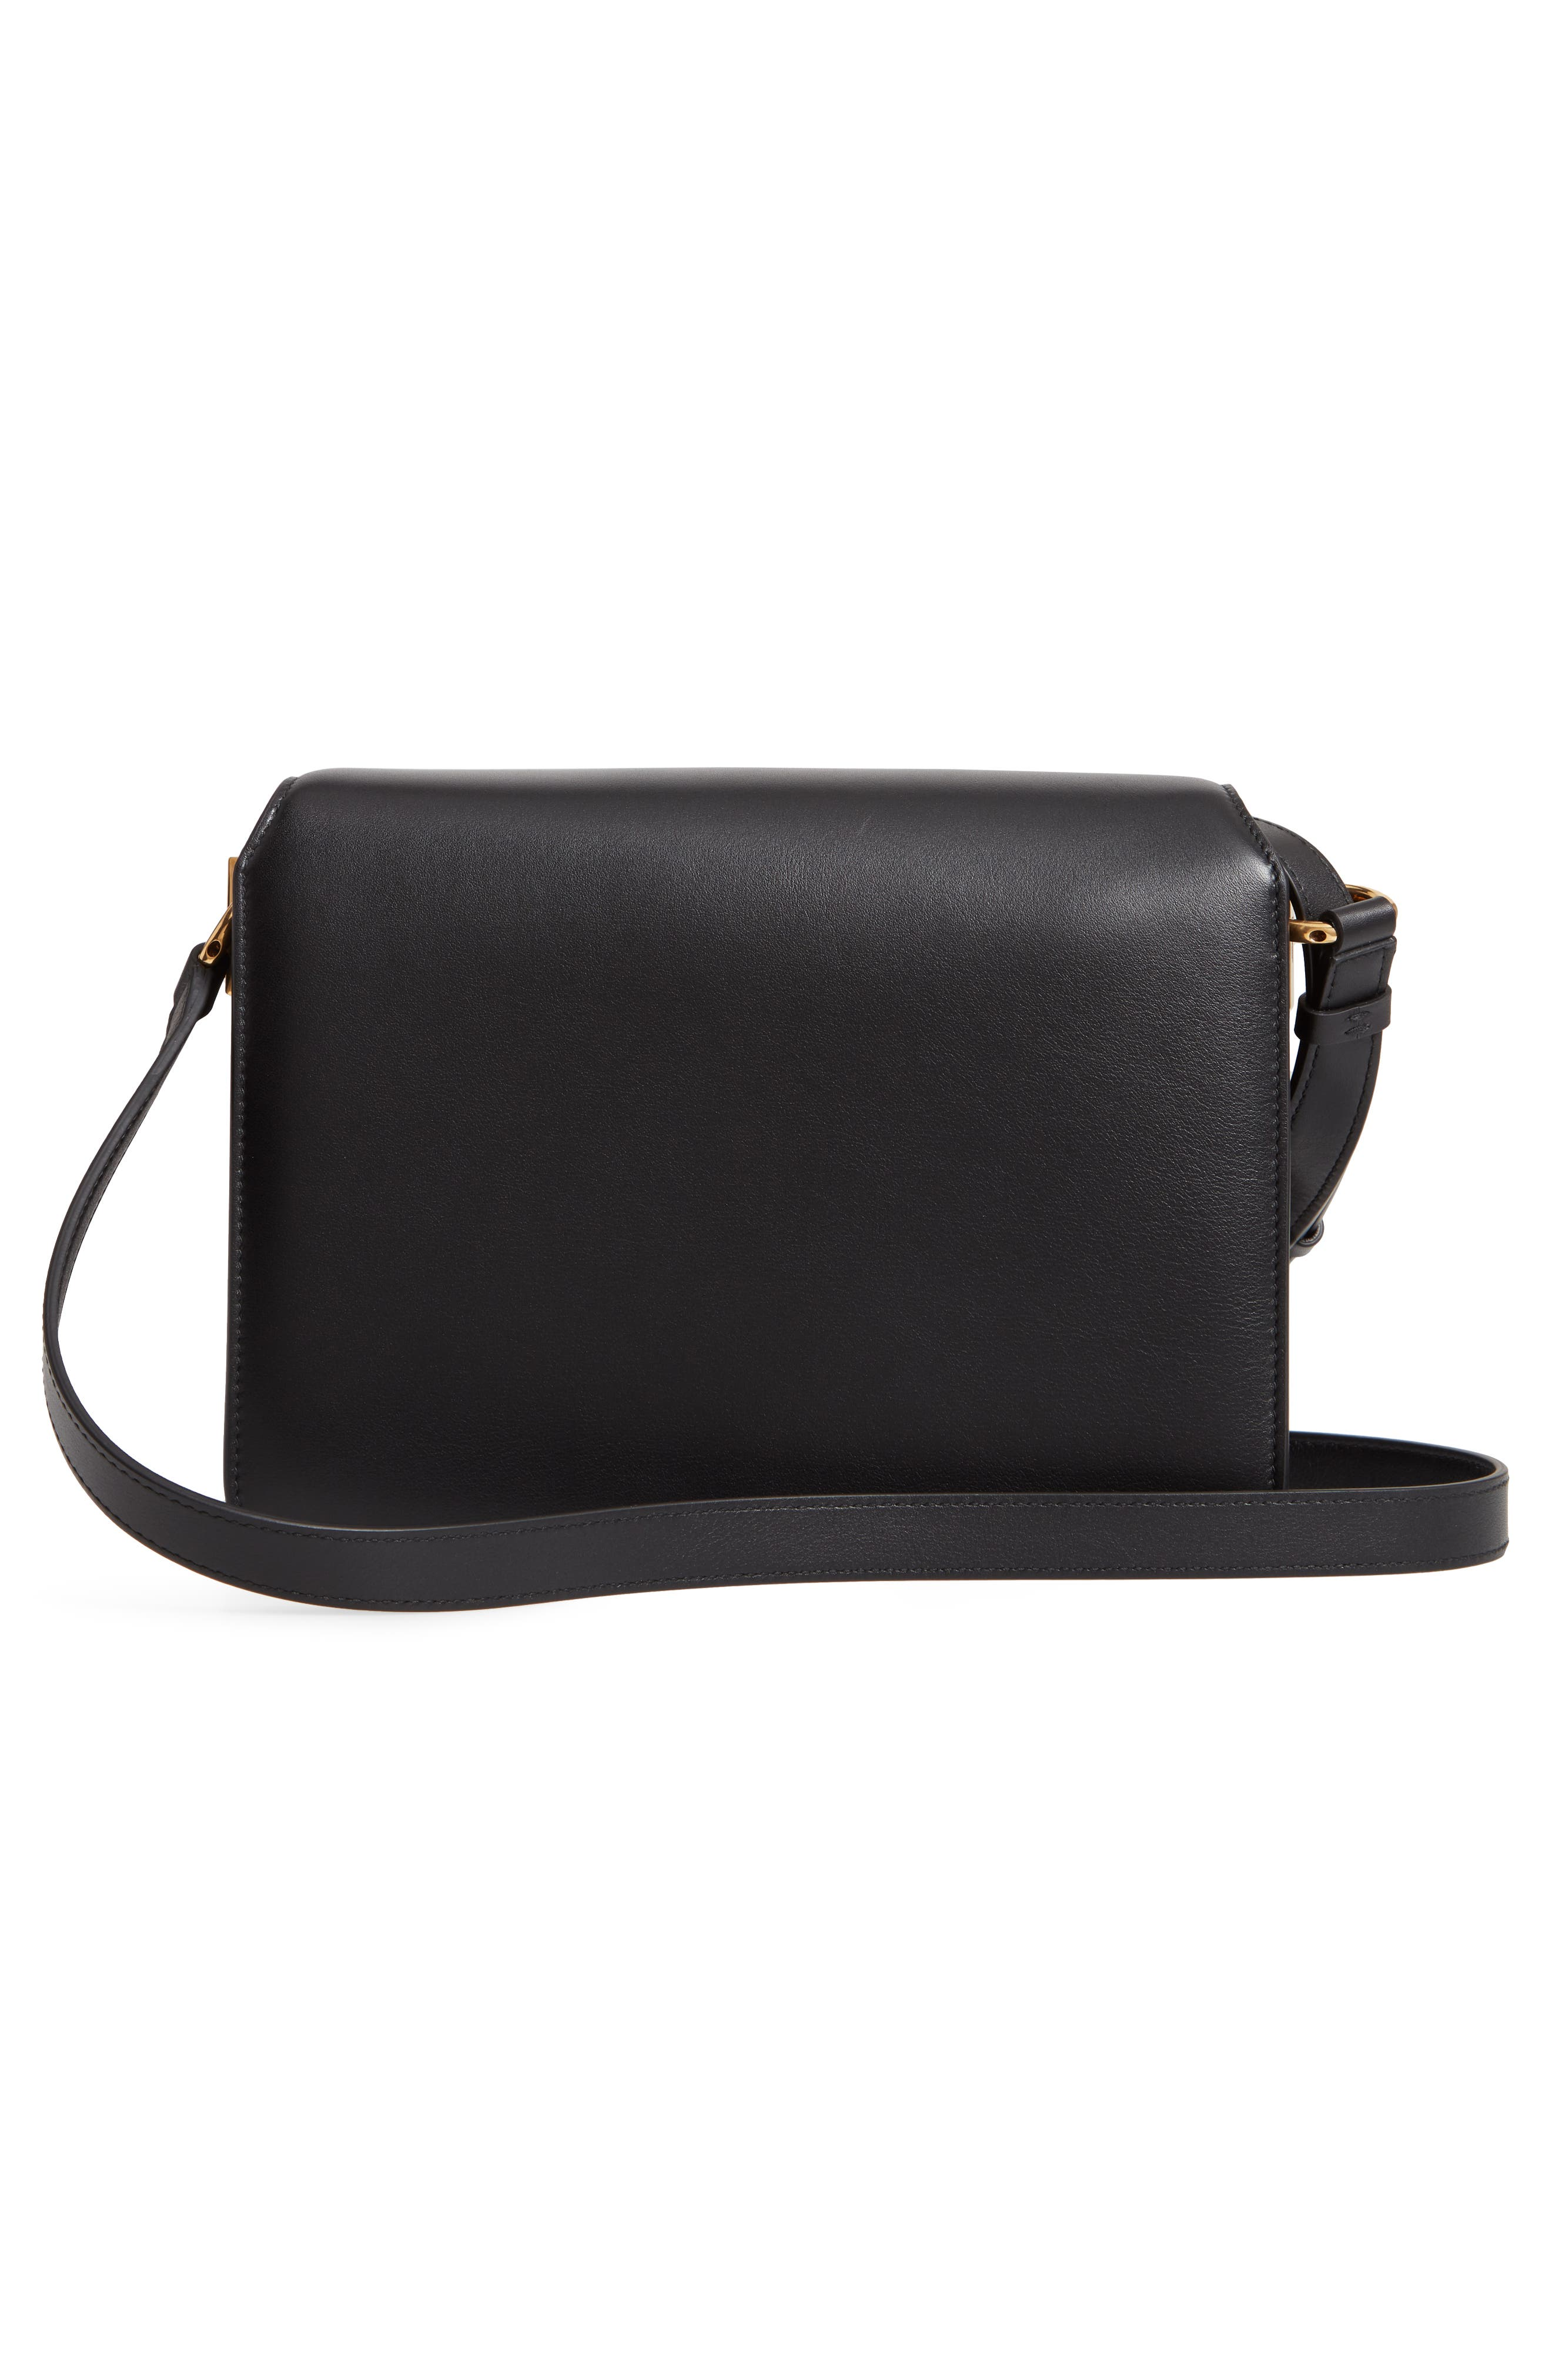 Medium Classic Flap Leather Shoulder Bag,                             Alternate thumbnail 3, color,                             BLACK